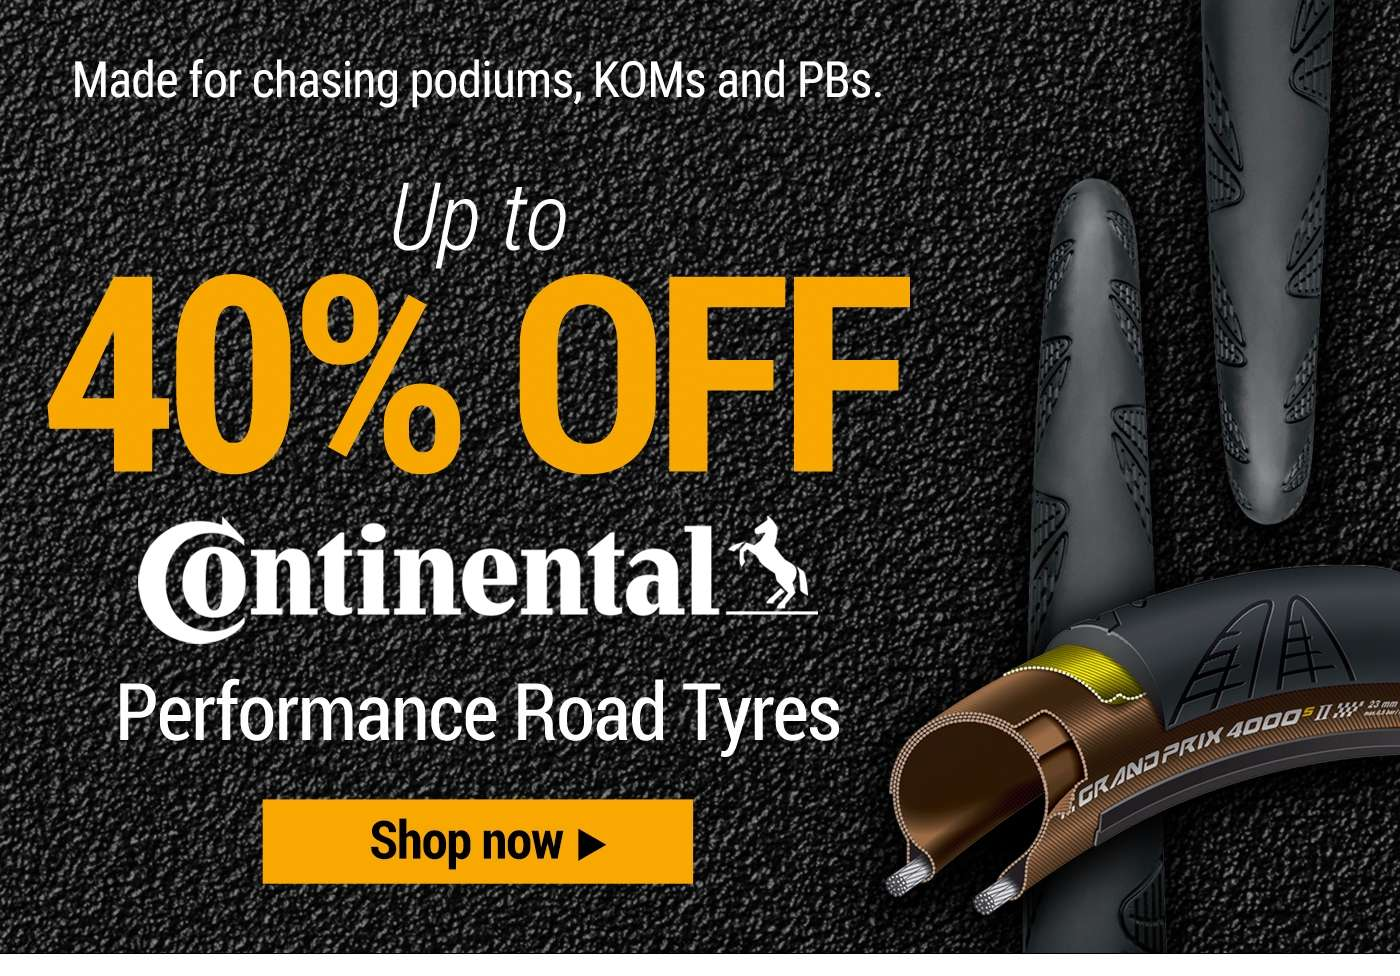 up to 40% off Continental Performance Road tyres